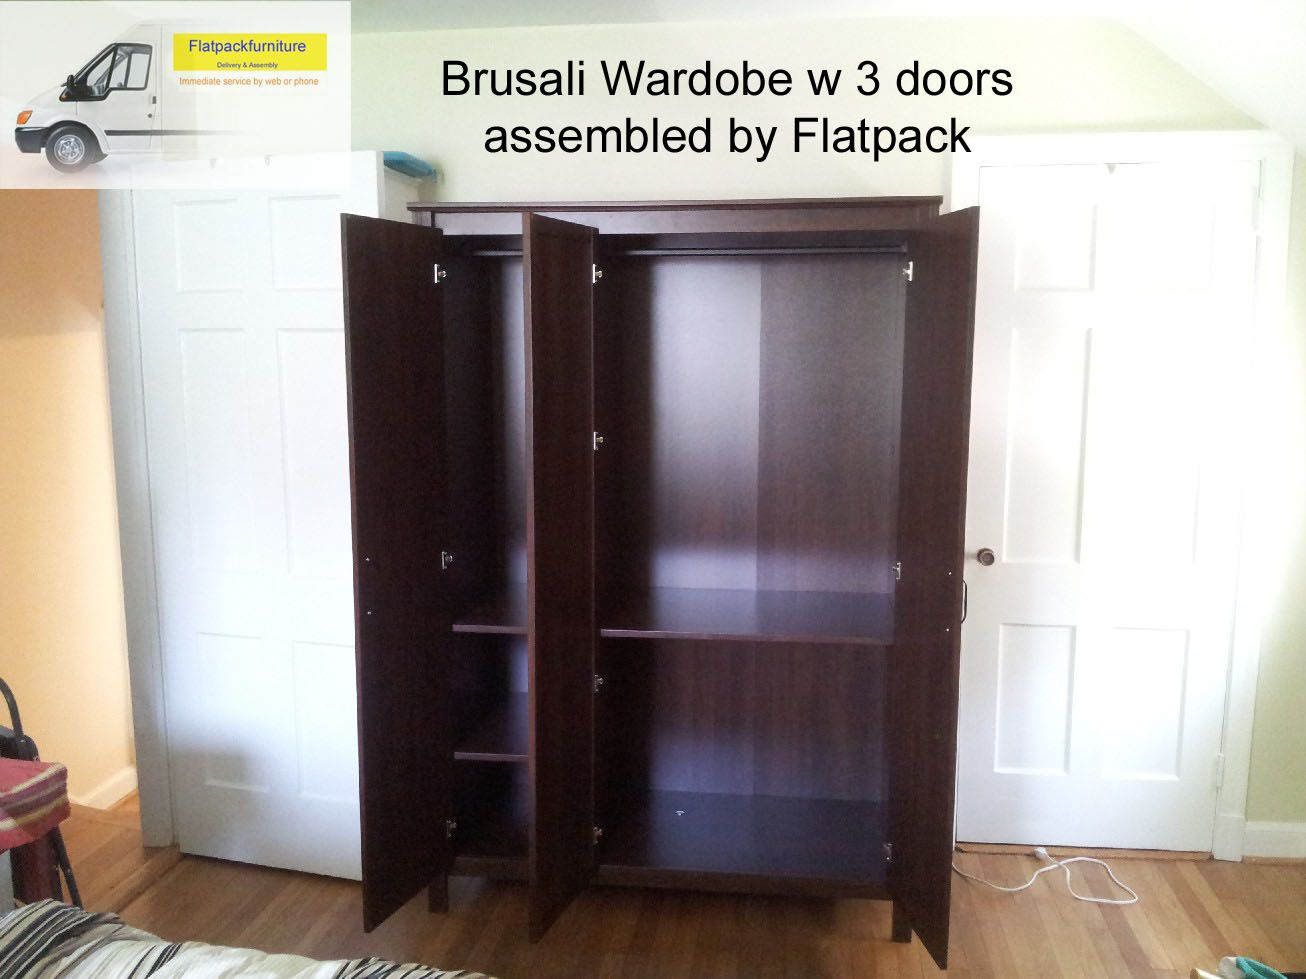 IKEA BRUSALI Wardrobe with 3 doors Article Number: 402.501.67 The 10 Best  Furniture